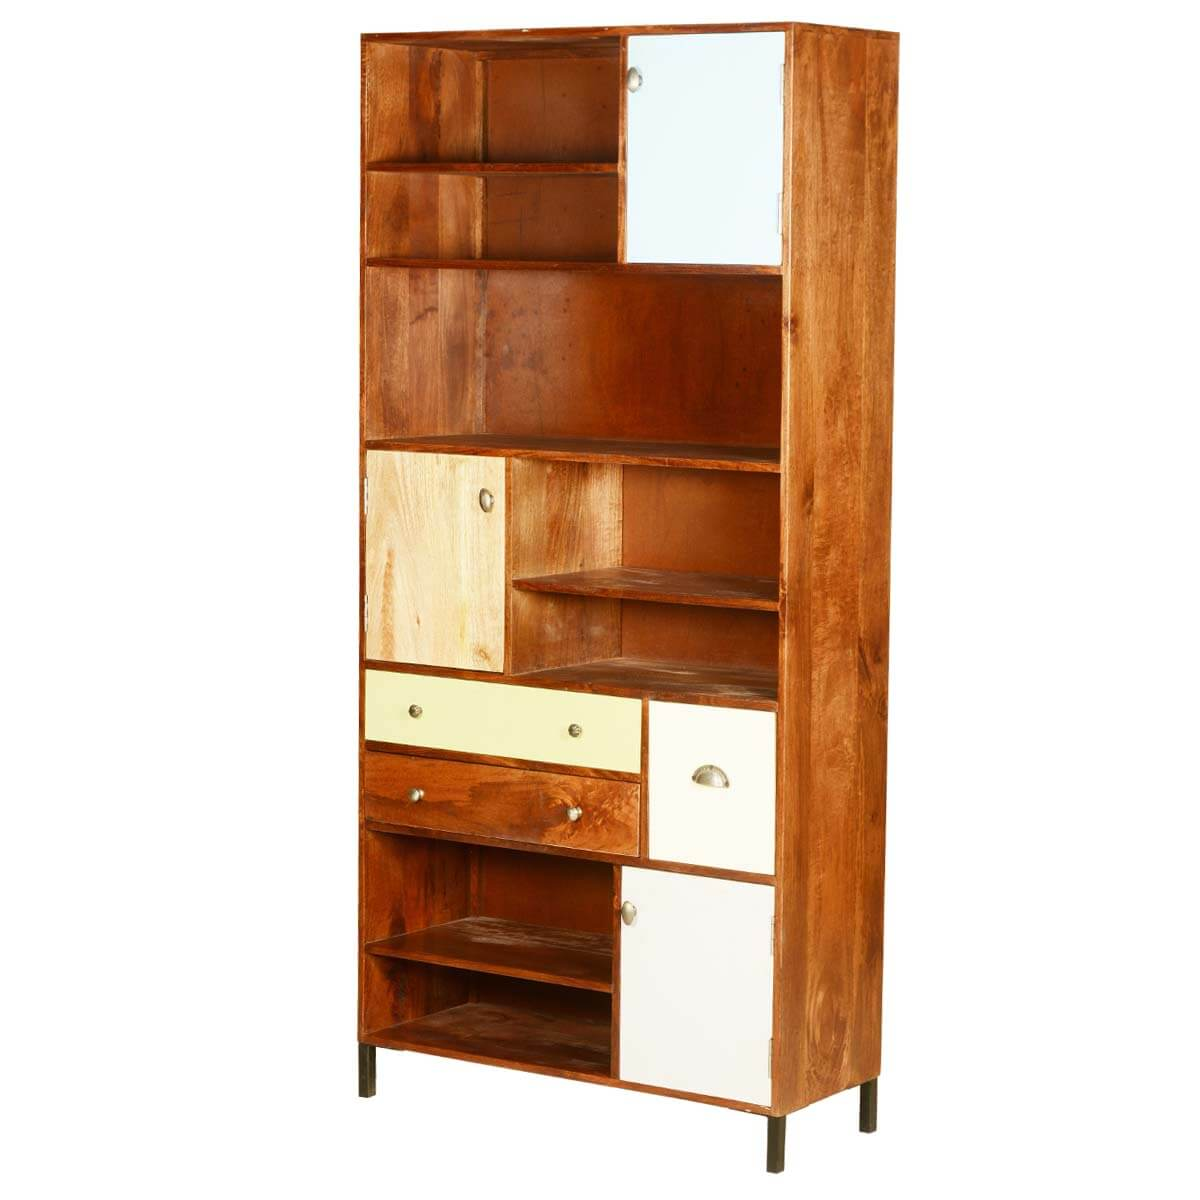 "60's Retro Mango Wood 76"" Open Display 13 Compartment Cabinet"